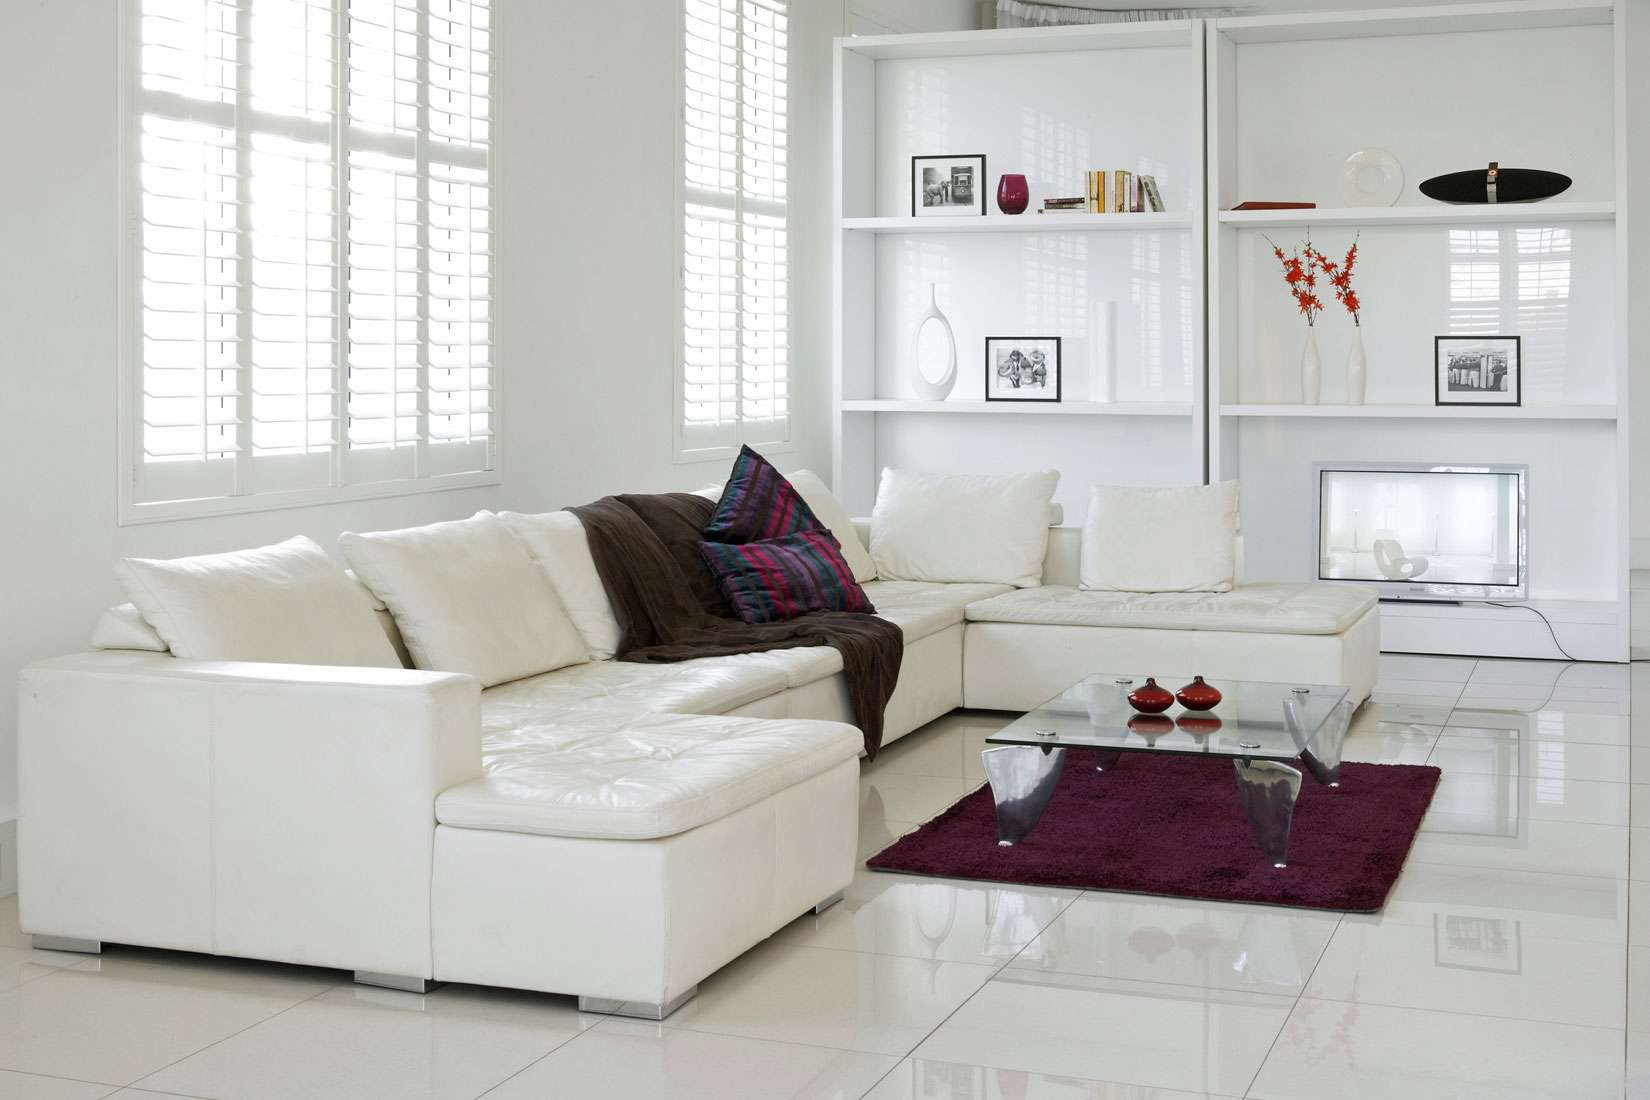 Living Room Wall Shelves Design White Chaise Lounge Sofa Bed